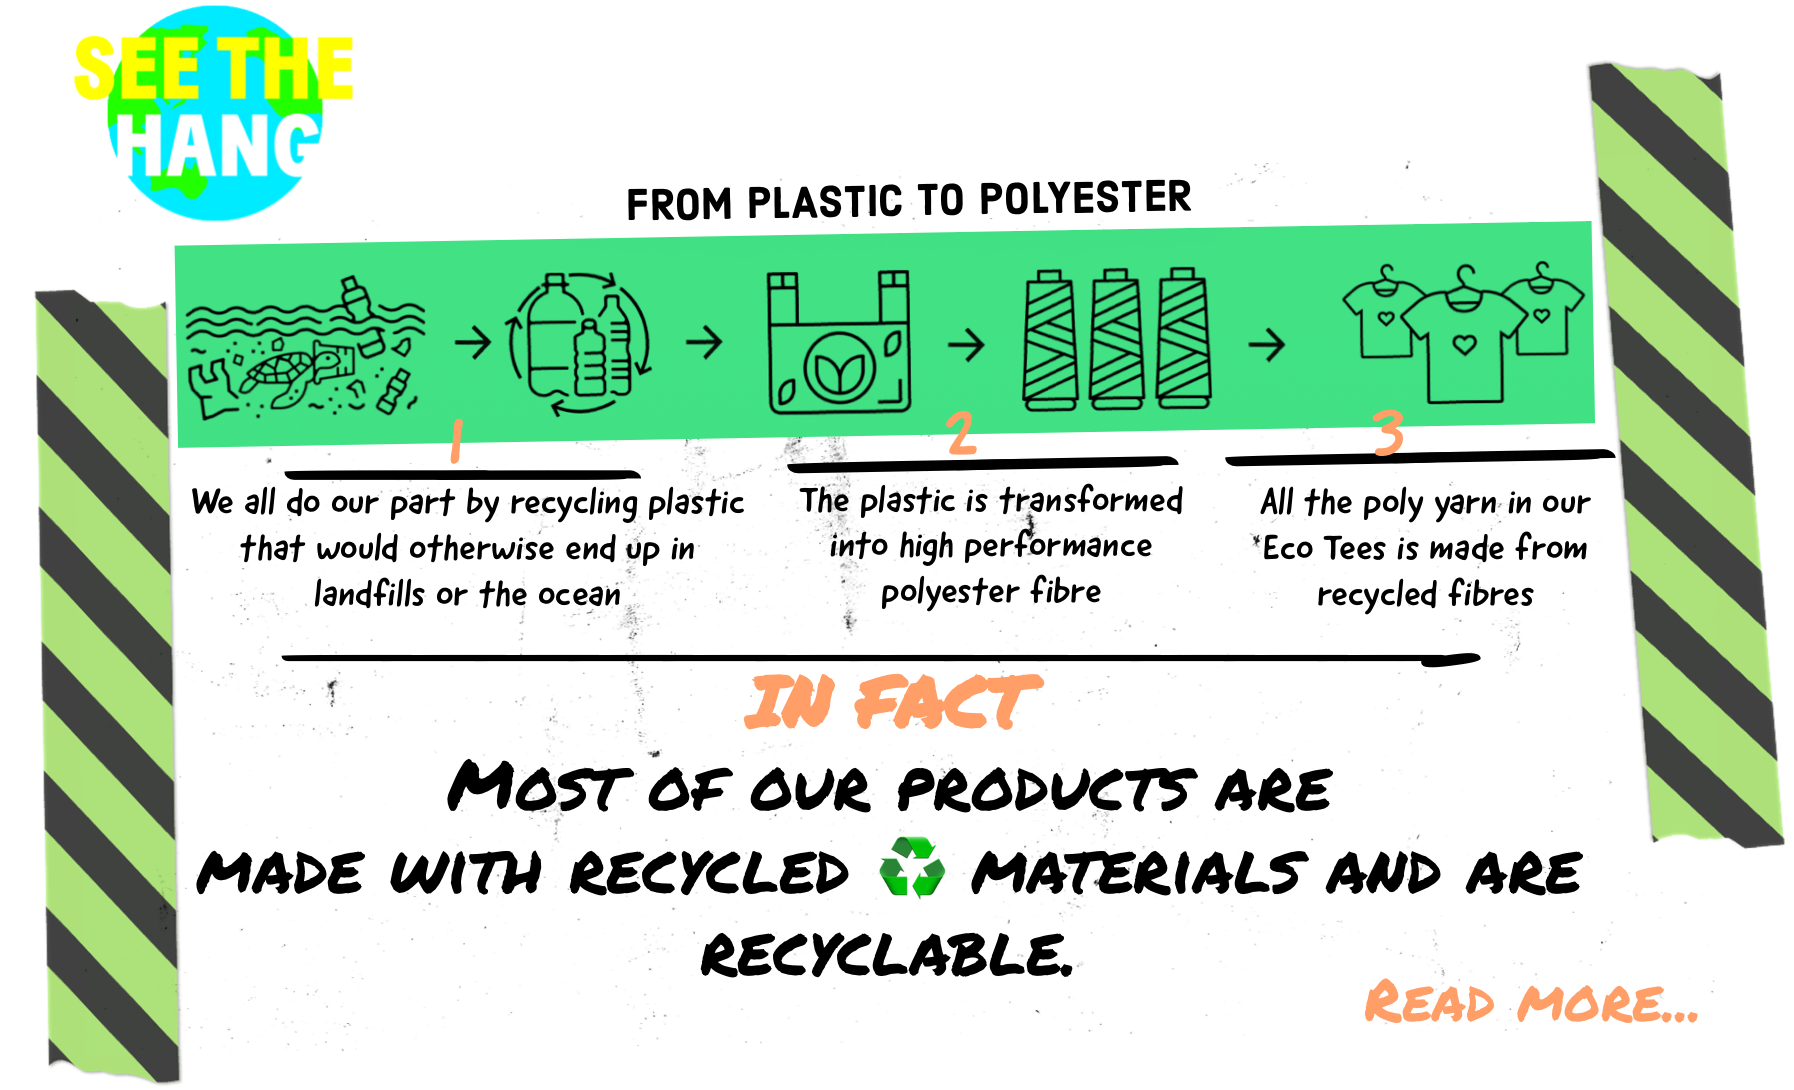 From recycled plastic to polyester fibre